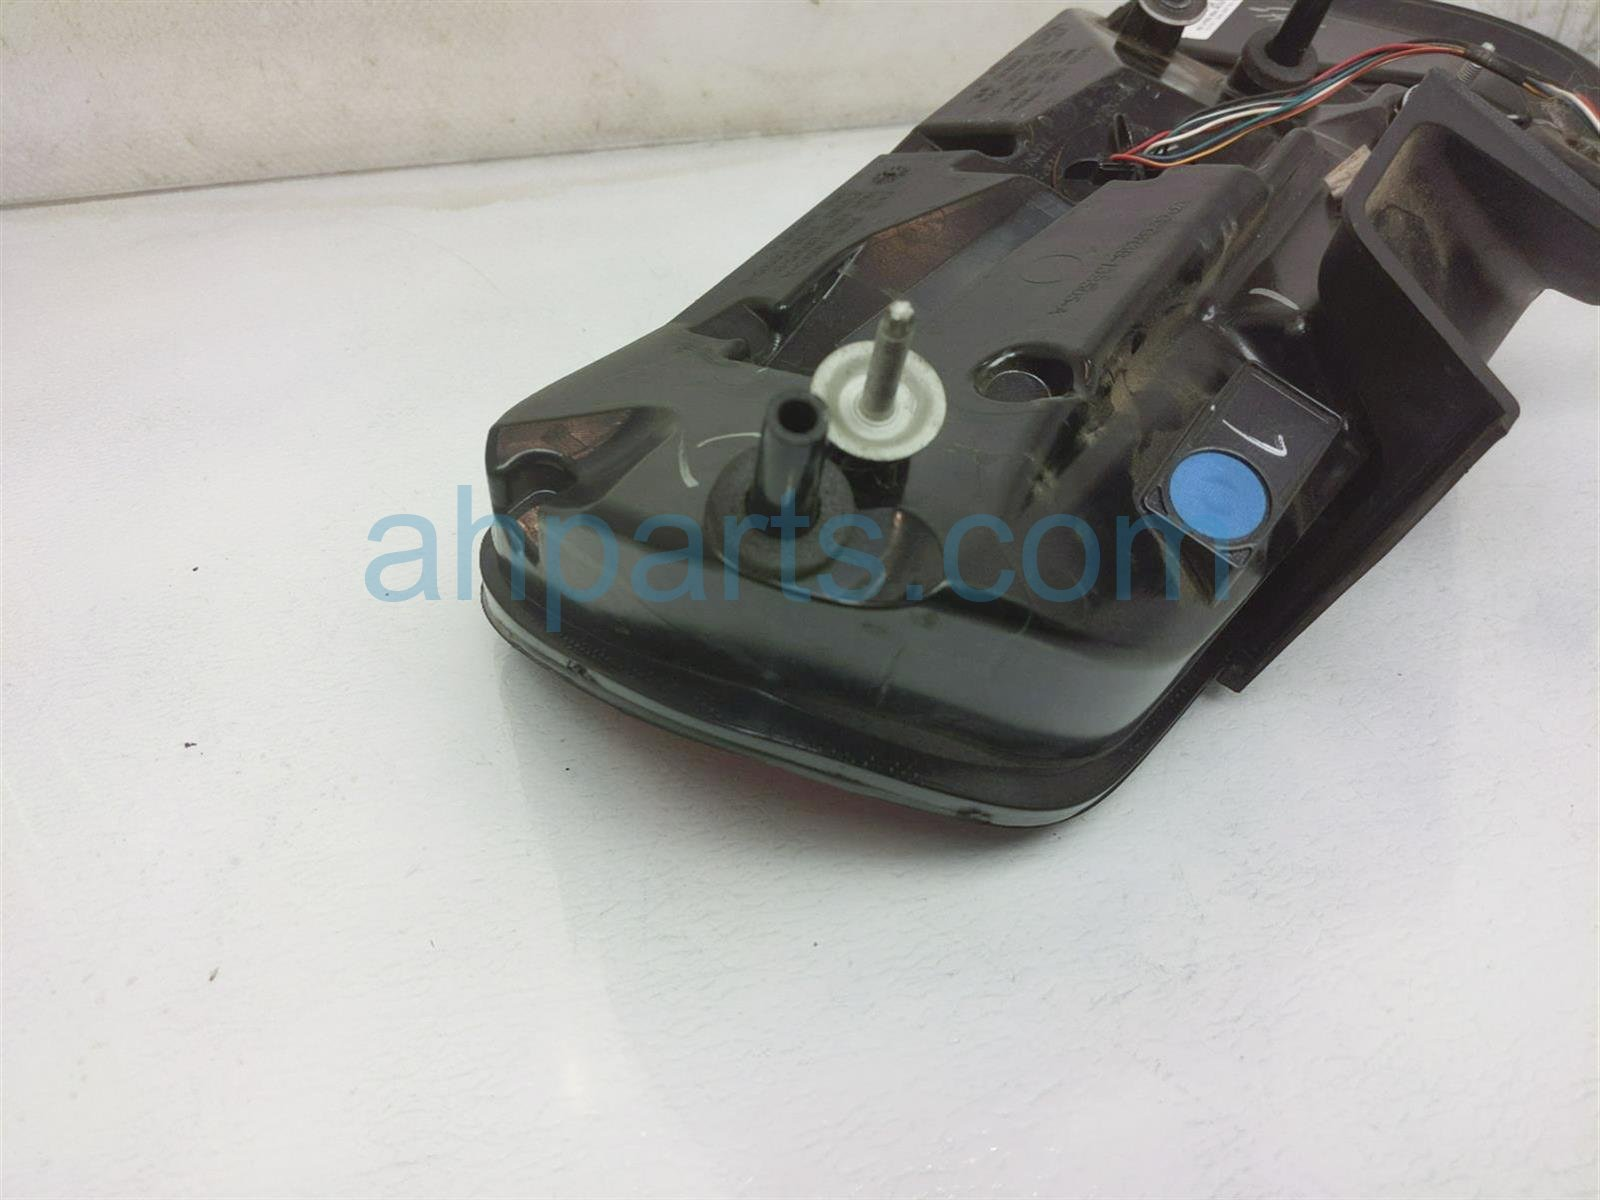 2017 Ford Mustang Rear Driver Tail Lamp / Light (on Body) GR3Z 13405 C Replacement